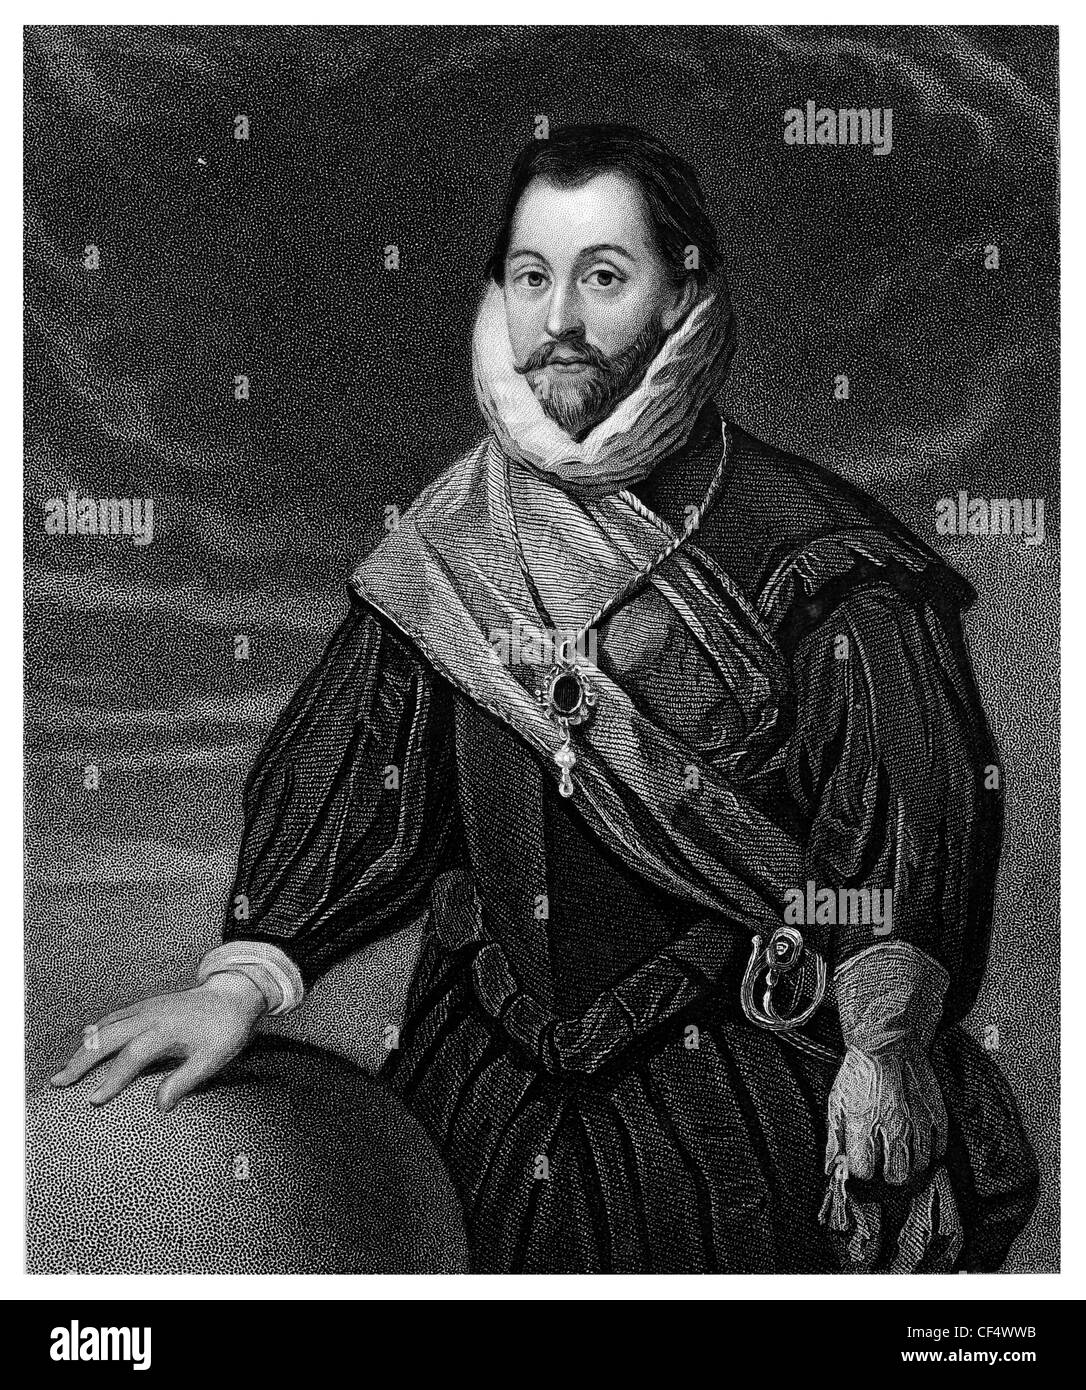 Sir Francis Drake Vice Admiral English sea captain privateer navigator slaver politician Elizabethan era Spanish - Stock Image